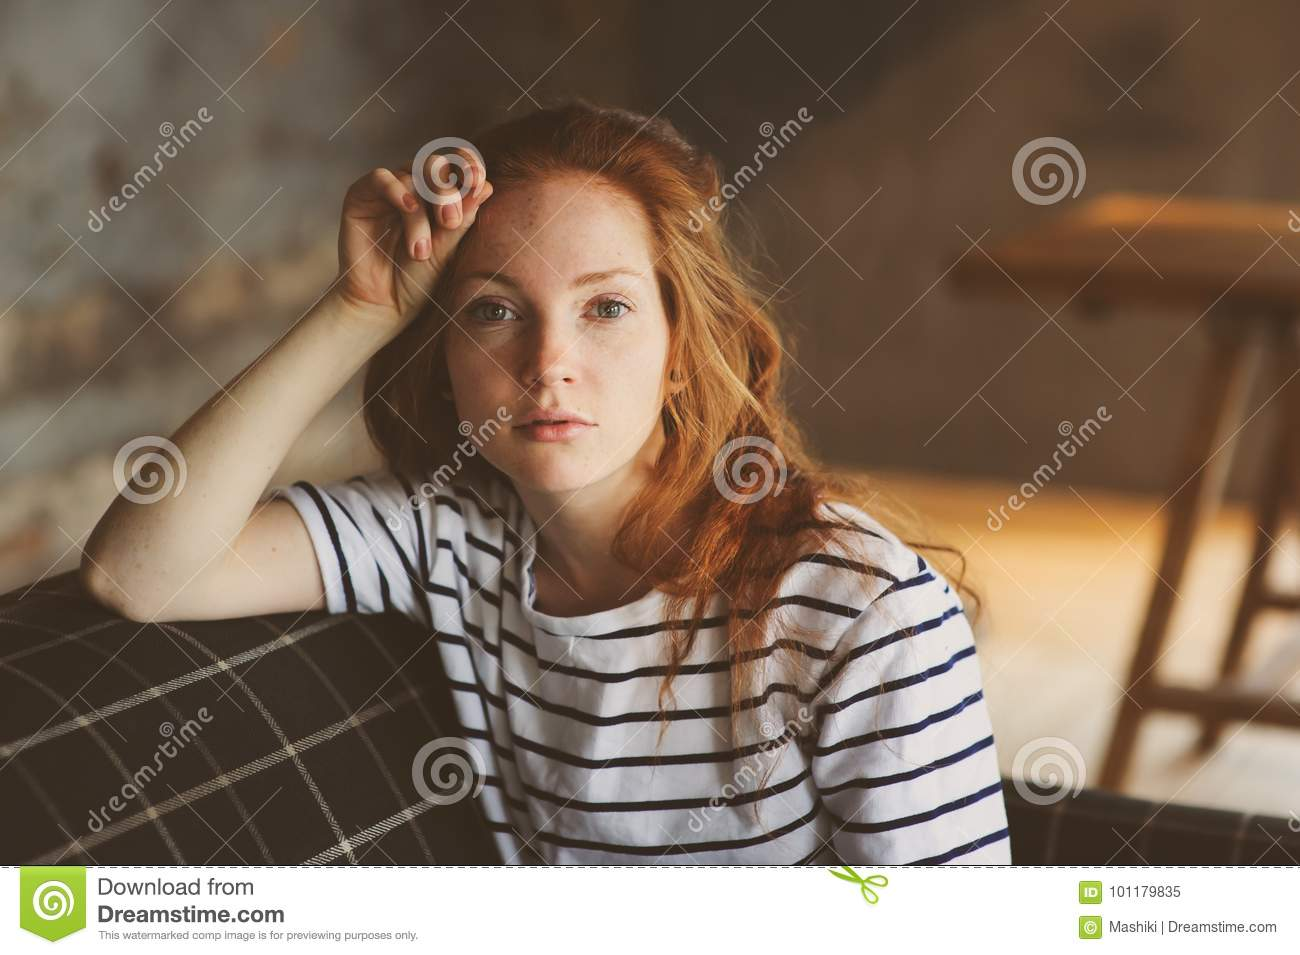 Portrait Of Young Beautiful Redhead Woman Relaxing At Home In The Autumn Ot Winter Cozy Evening